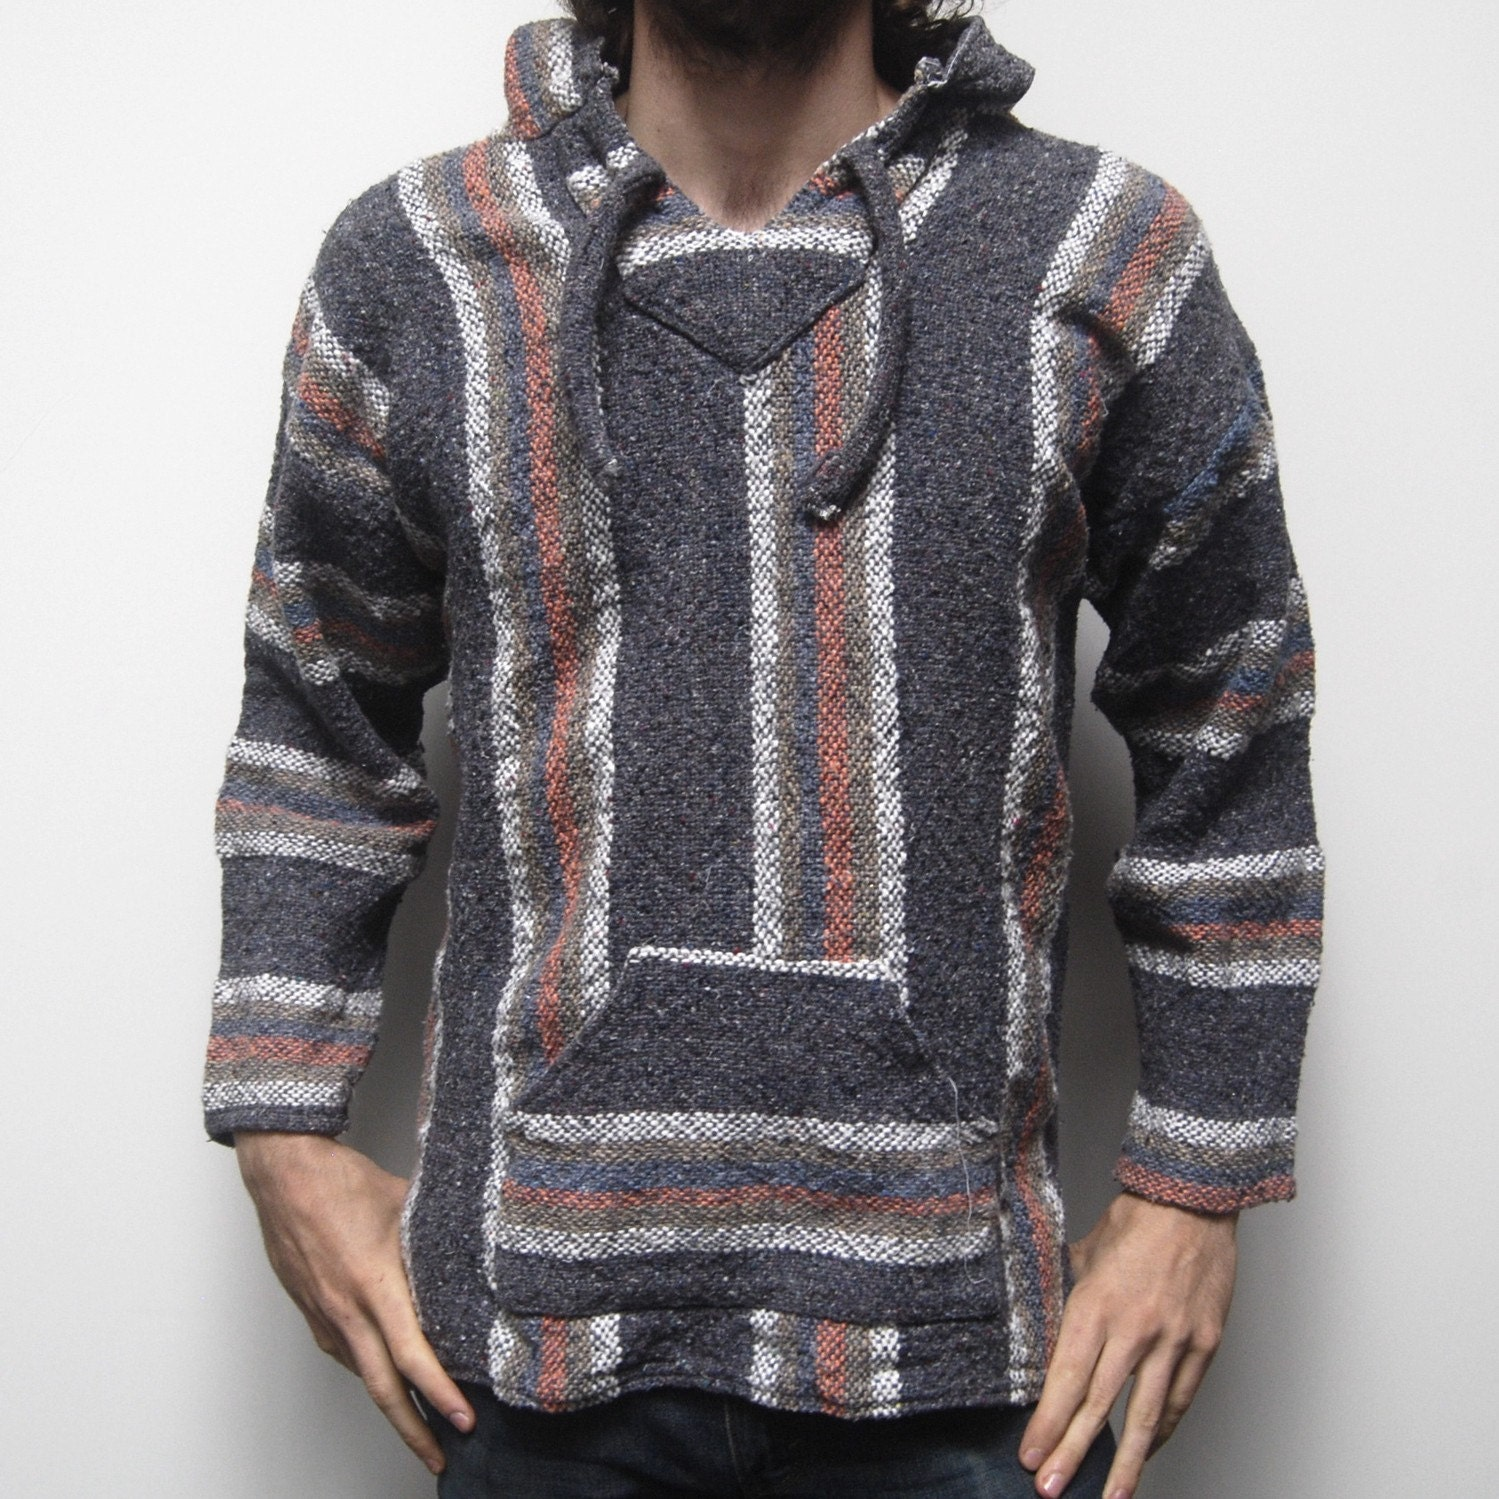 This Baja, Drug Rug, Jerga Is A Step Above Your Typical Baja Jacket Galaxy Reborn Baja Hoodie Sea Glass Green Mexican Poncho Pullover Drug Rug Jerga. by Galaxy Reborn. $ $ 32 95 Prime. FREE Shipping on eligible orders. Some sizes/colors are Prime eligible. 5 out of 5 stars 6.